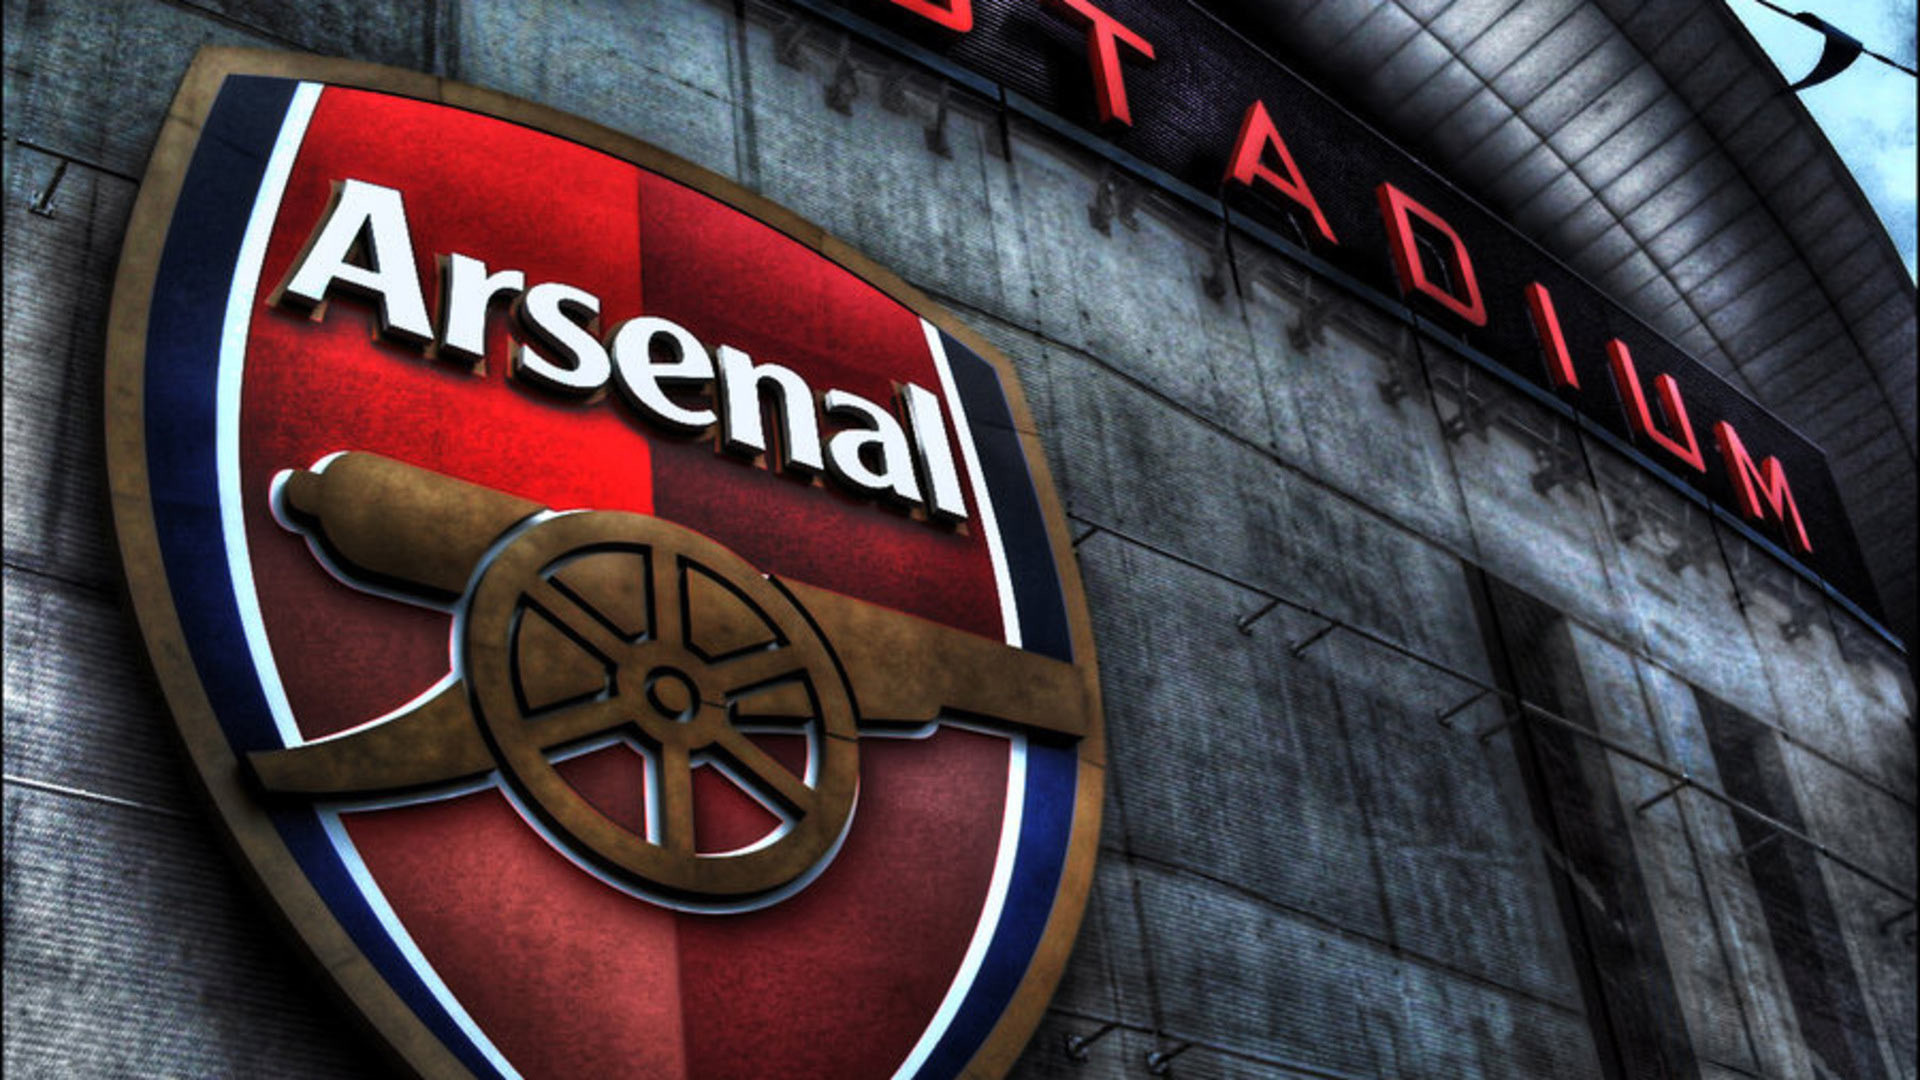 … Fantastic Arsenal Wallpaper Movies Giant Widescreen Wallpapers  2560×1440 . You Can Download All